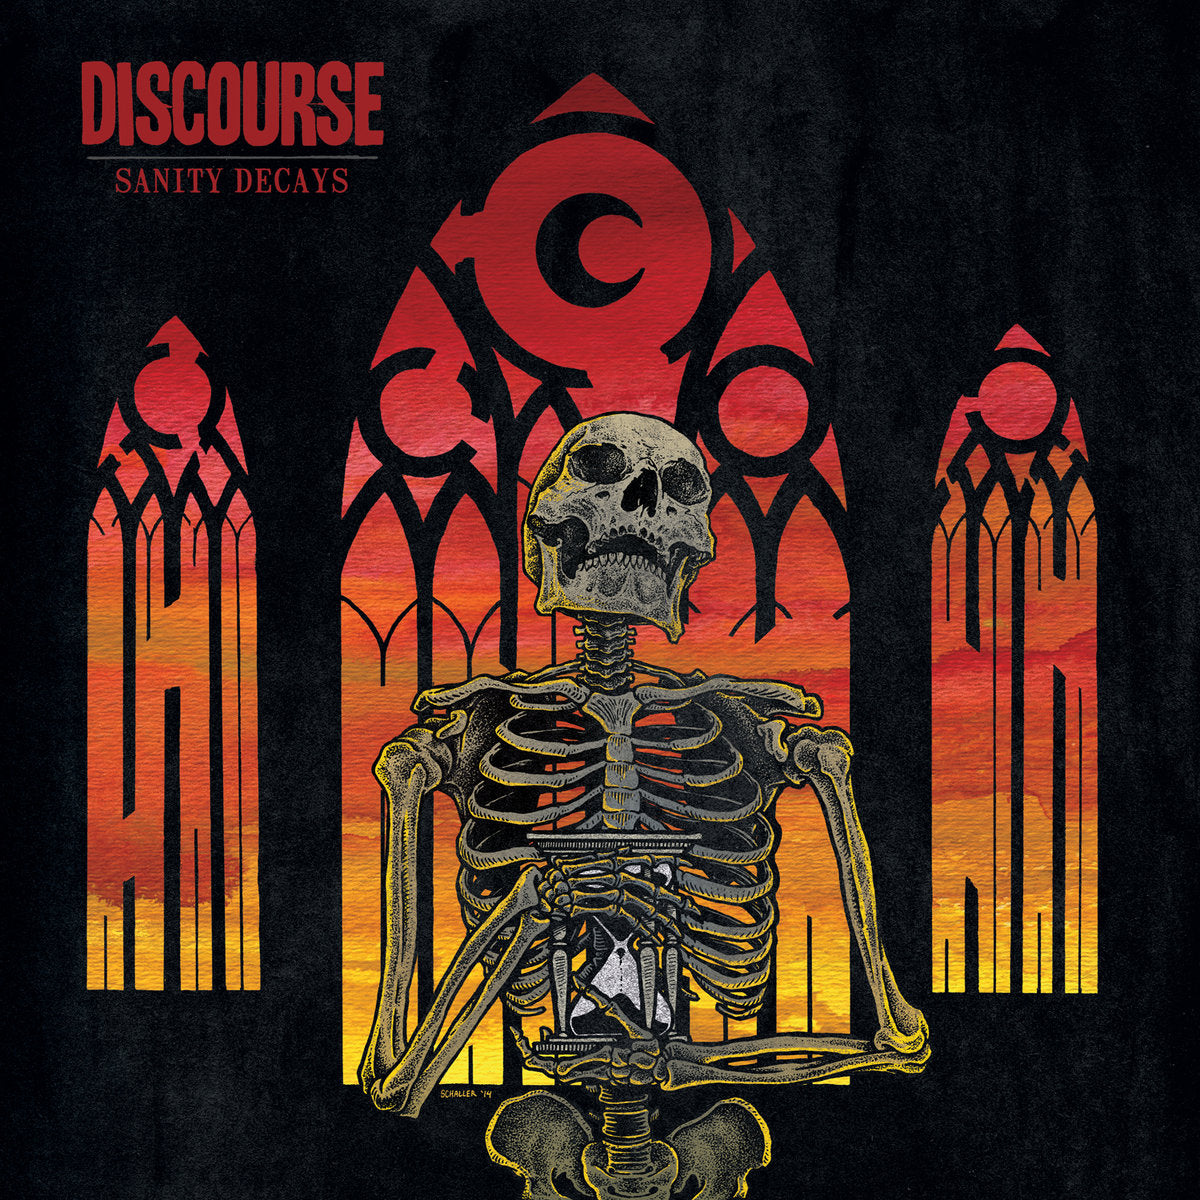 DISCOURSE 'Sanity Decays' LP / COLORED EDITION